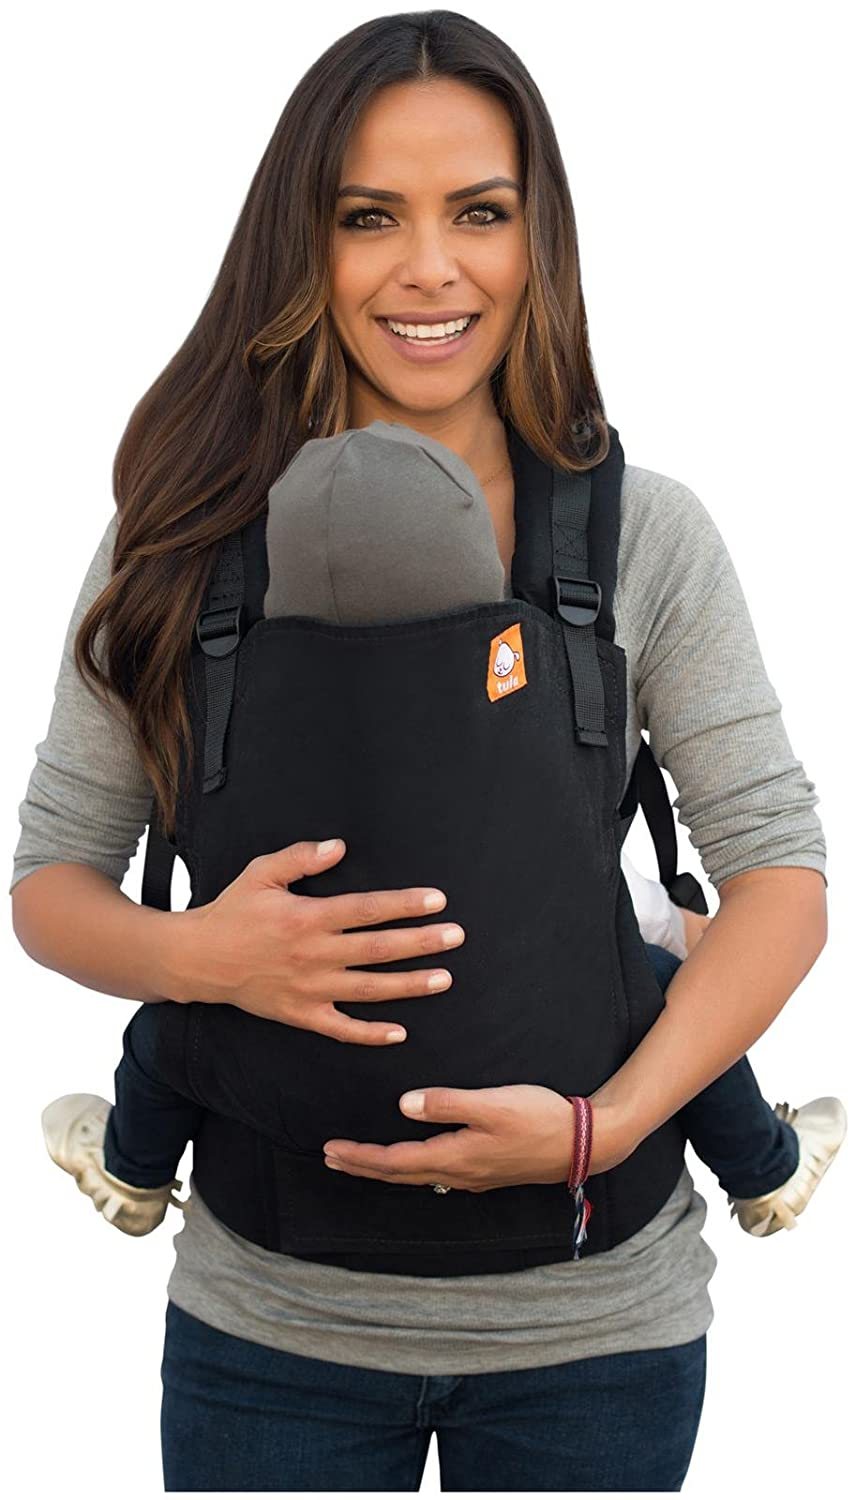 Best Baby Carriers For Newborns The Gentle Nursery